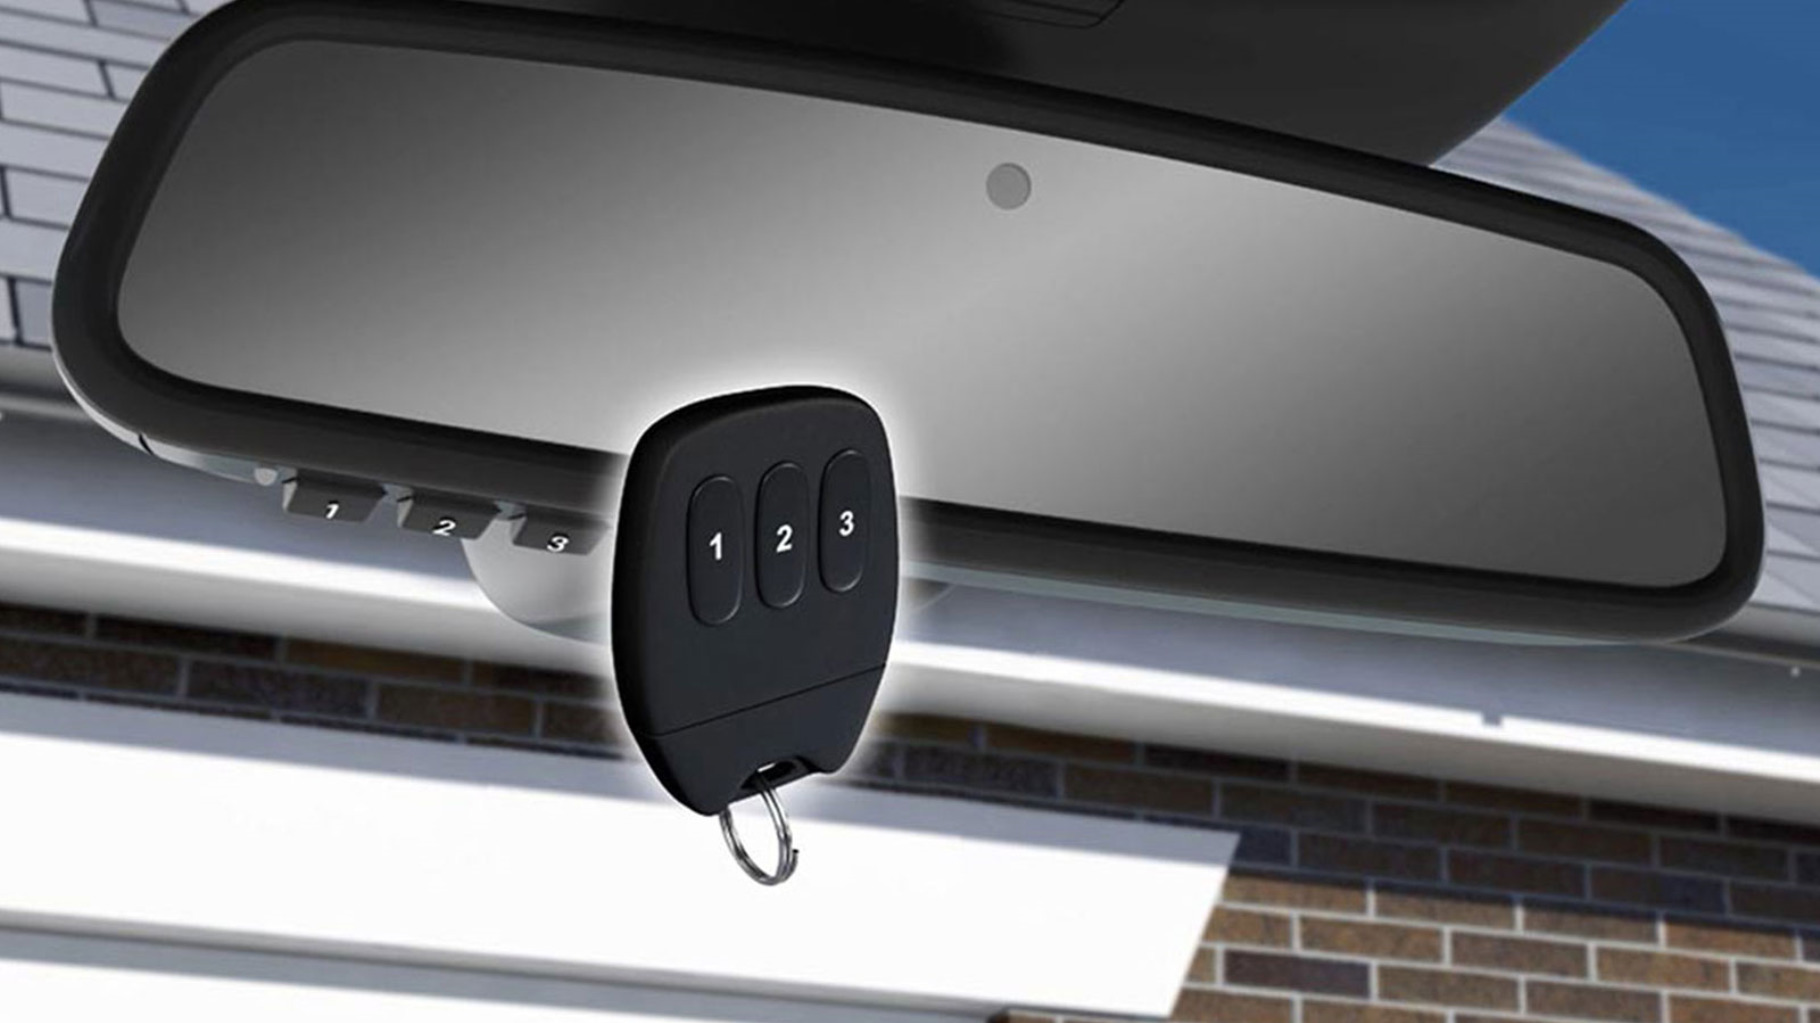 Garage Door Opener (Homelink)